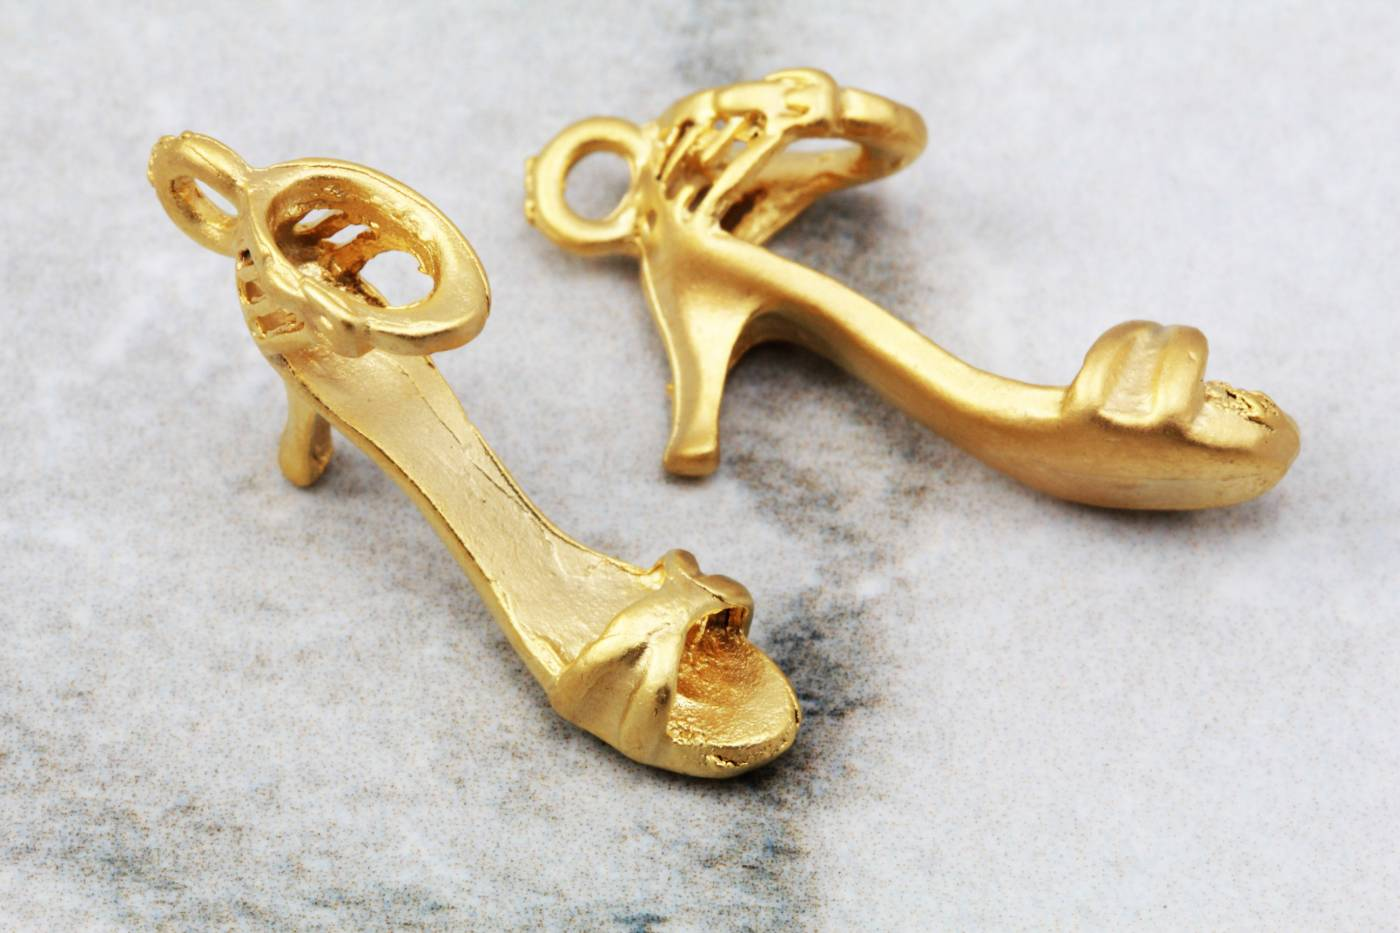 gold-plated-metal-high-heel-shoe-pendant.jpg